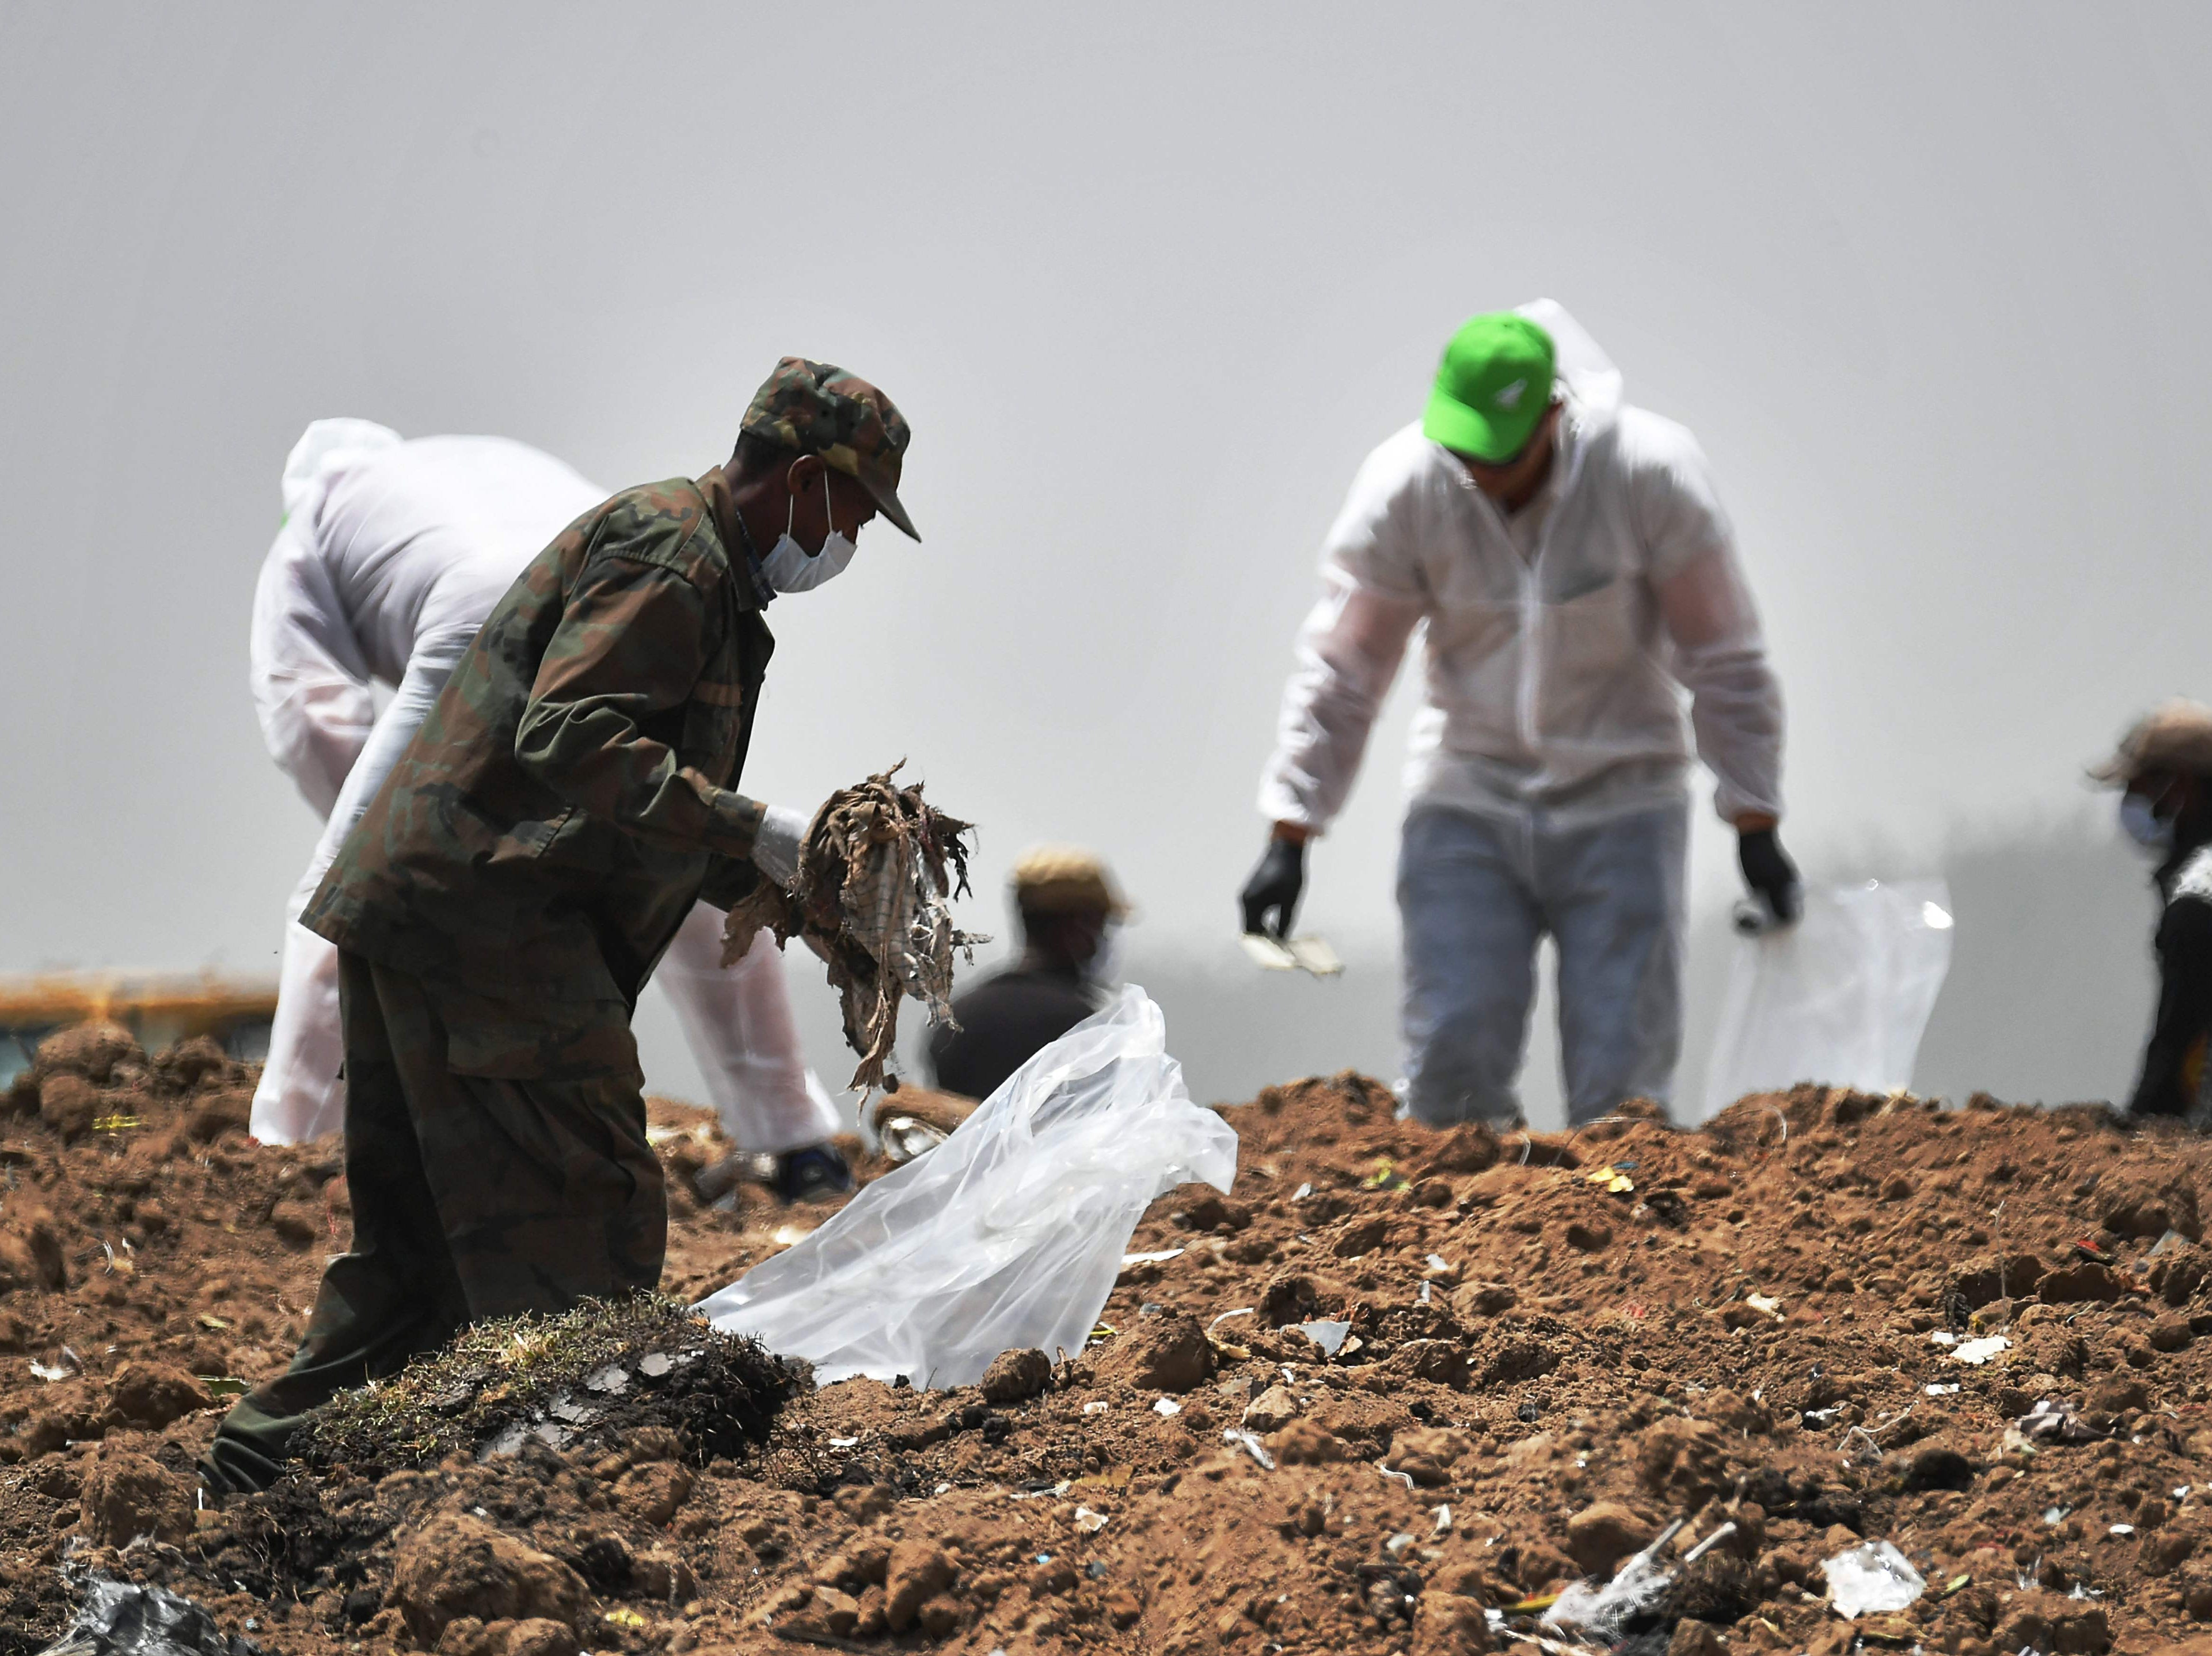 Forensics experts comb through the dirt for debris at the crash site of the Ethiopian Airlines operated Boeing 737 MAX aircraft, at Hama Quntushele village in Oromia region, on March 14, 2019, four days after the plane crashed into a field killing 157 passengers and crew. - The black box flight recorders from the Boeing 737 MAX aircraft that crashed in Ethiopia were flown to France on March 14, 2019 for analysis as the ban on the model went worldwide after the US President added the US to countries that have grounded the aircraft. The US action came after many airlines around the globe voluntarily took the model out of service and many countries banned it from their airspace.